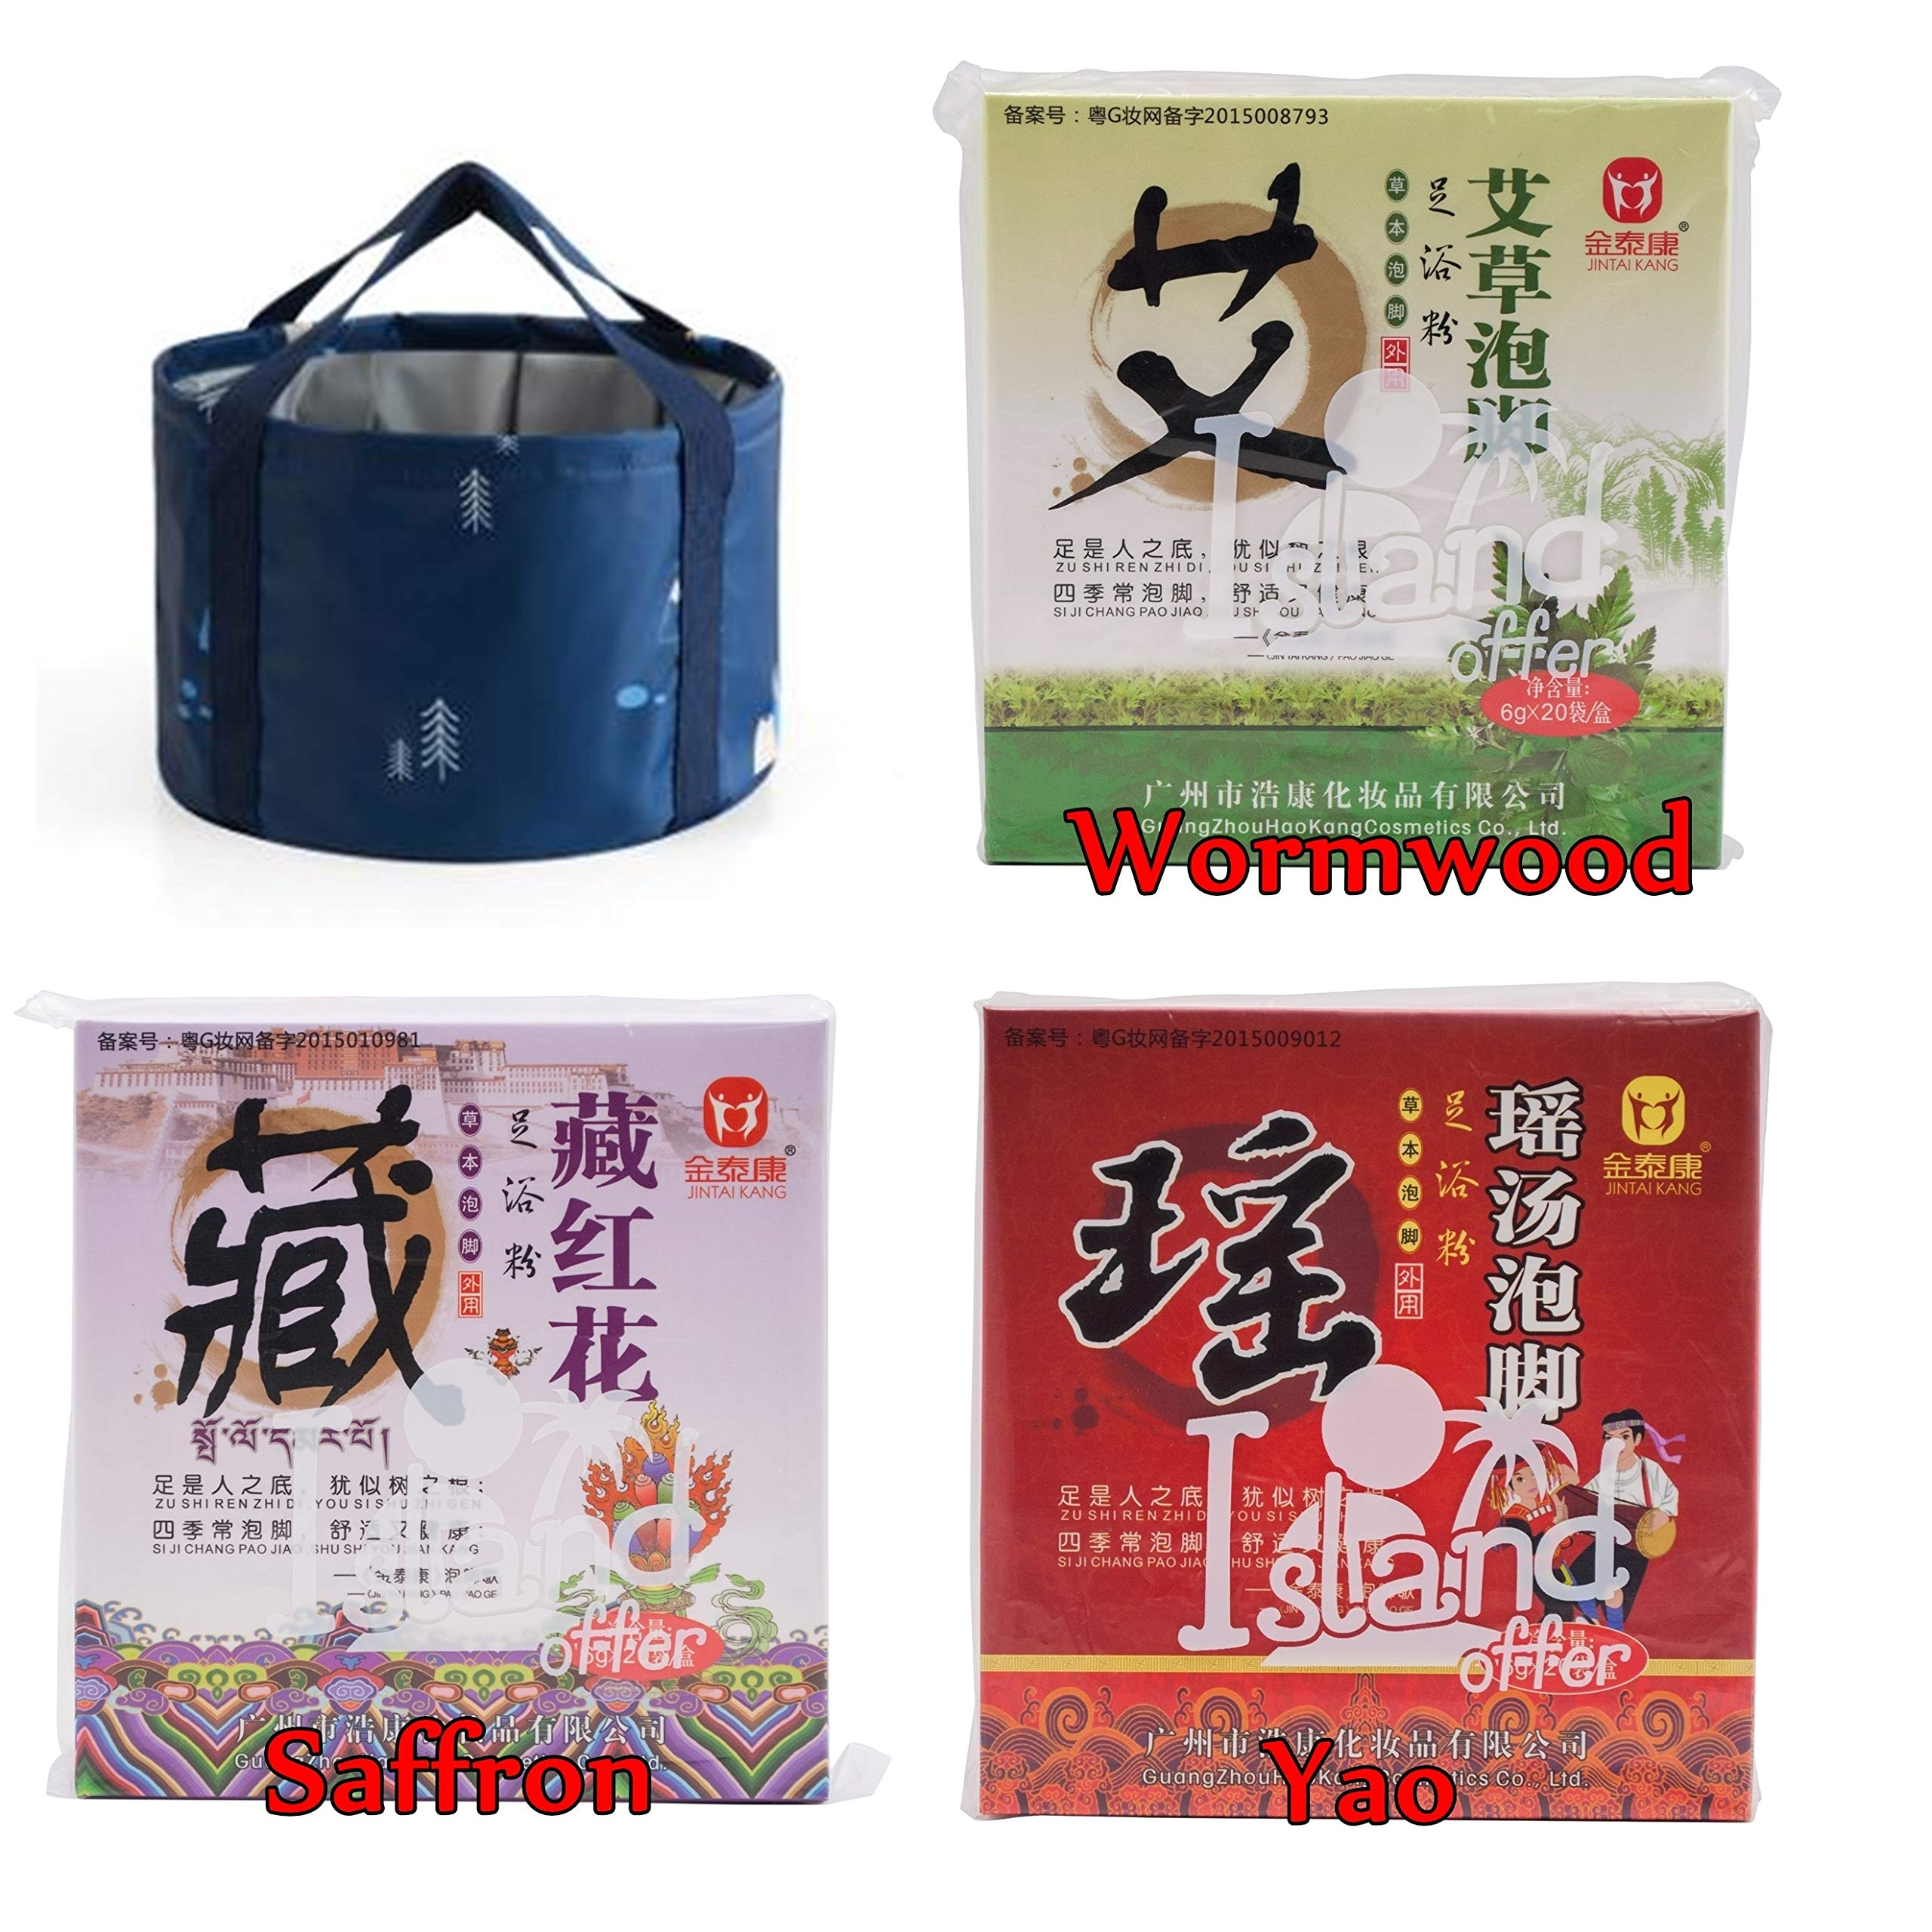 3 Favors of Foot Reflexology Chinese medicine foot bath powder kits cold blood WITH 1X Foldable bucket, Wash Basin Water Container (Wormwood, Saffron, Yao with Dark blue bucket)